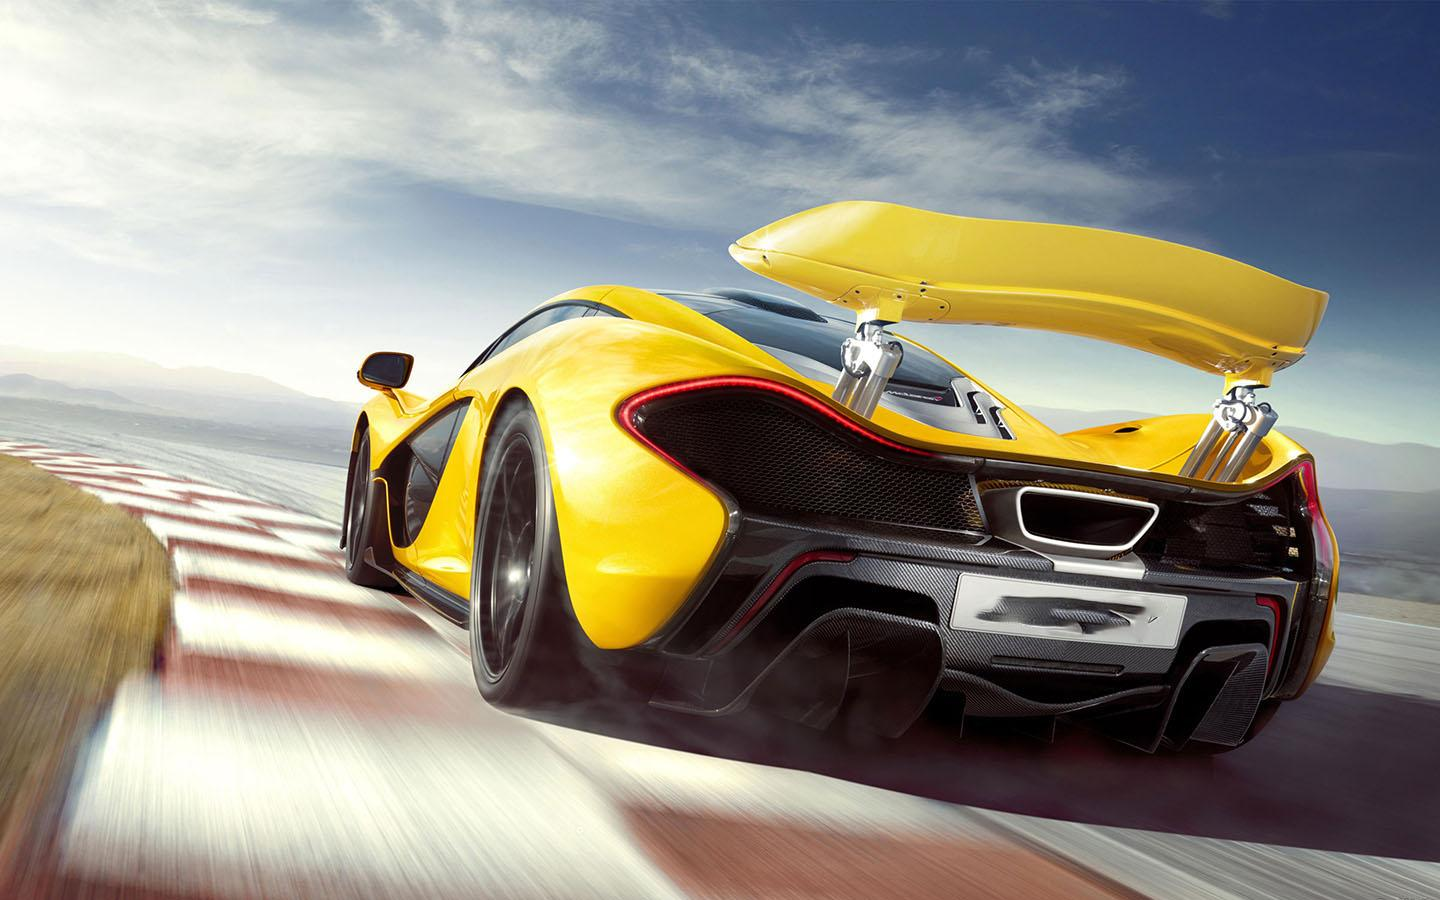 Car Wallpaper 1 01 Apk Download Android Personalization Apps